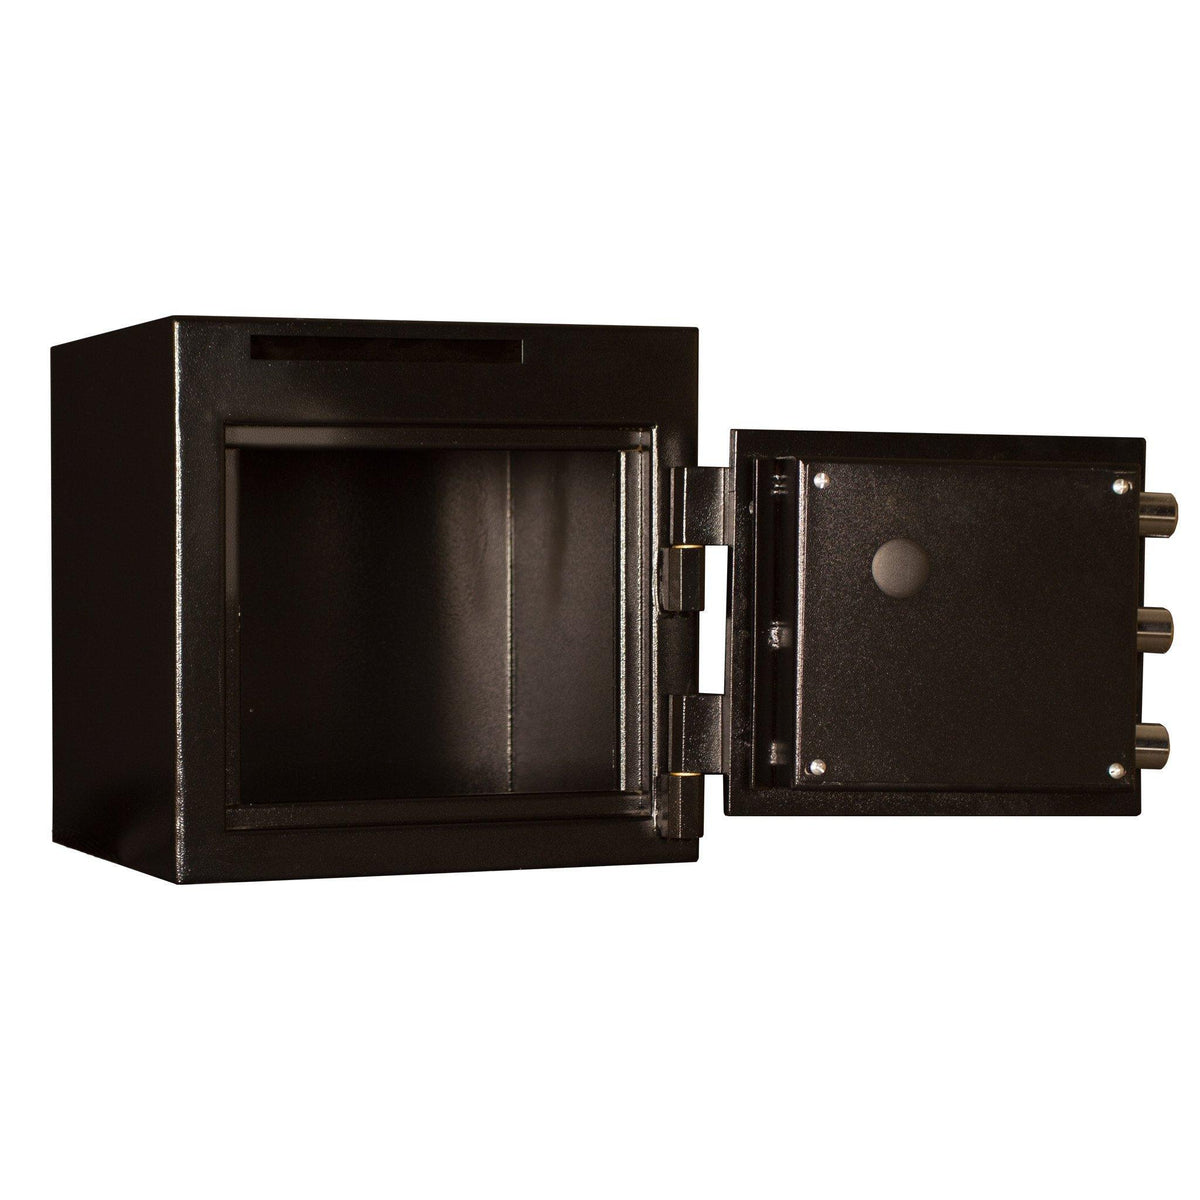 Burglary Safes - Tracker DS141414-ESR Burglar Safe With Drop Slot